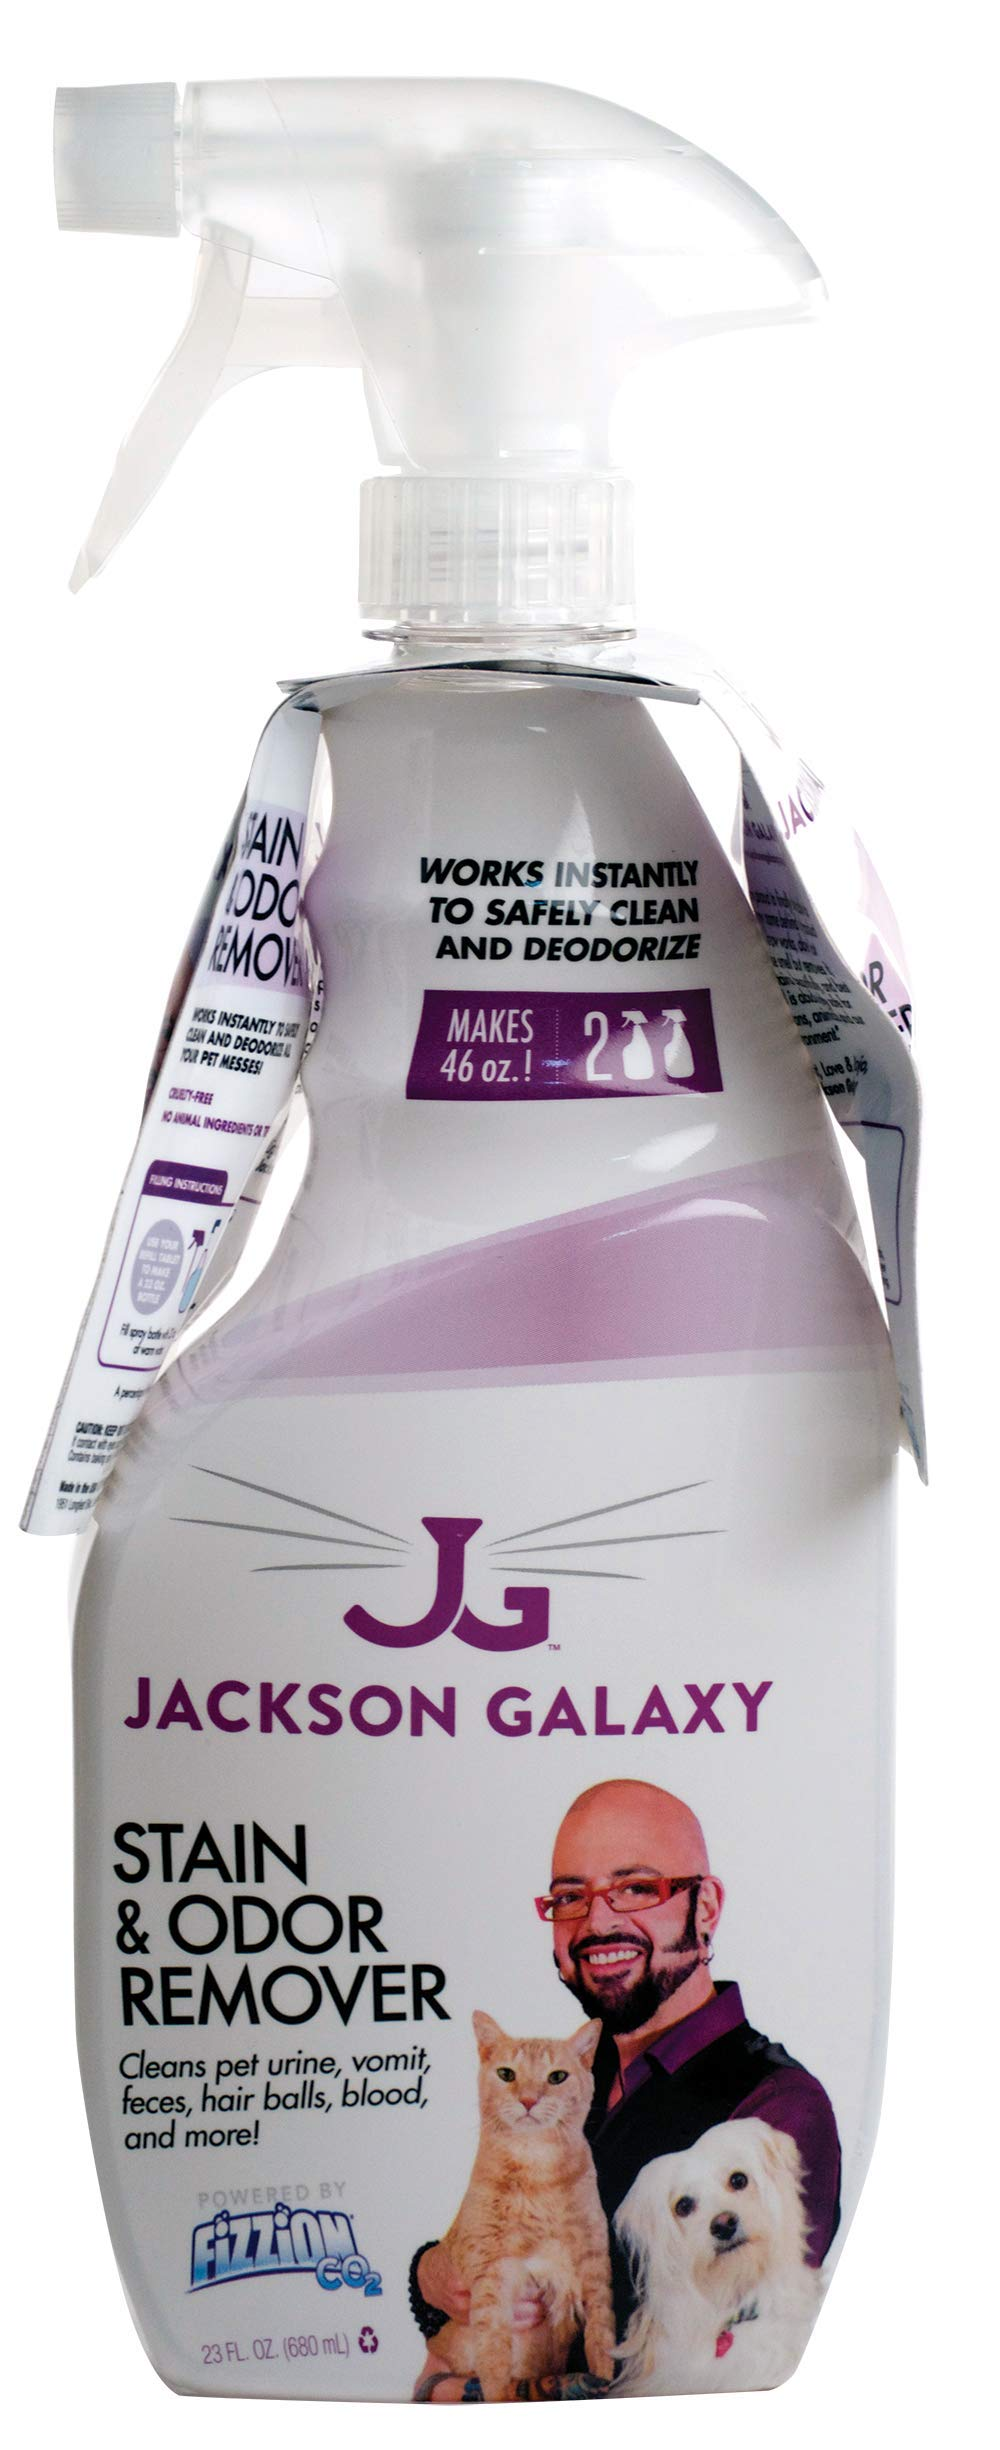 Jackson Galaxy: Stain & Odor Remover - Pet Urine Remover - 23 oz bottle - 2 Fill Tablets Included - Eliminates Pet Stains & Odors Quickly - Works On Multiple Surfaces - Non-Toxic Formula by Jackson Galaxy